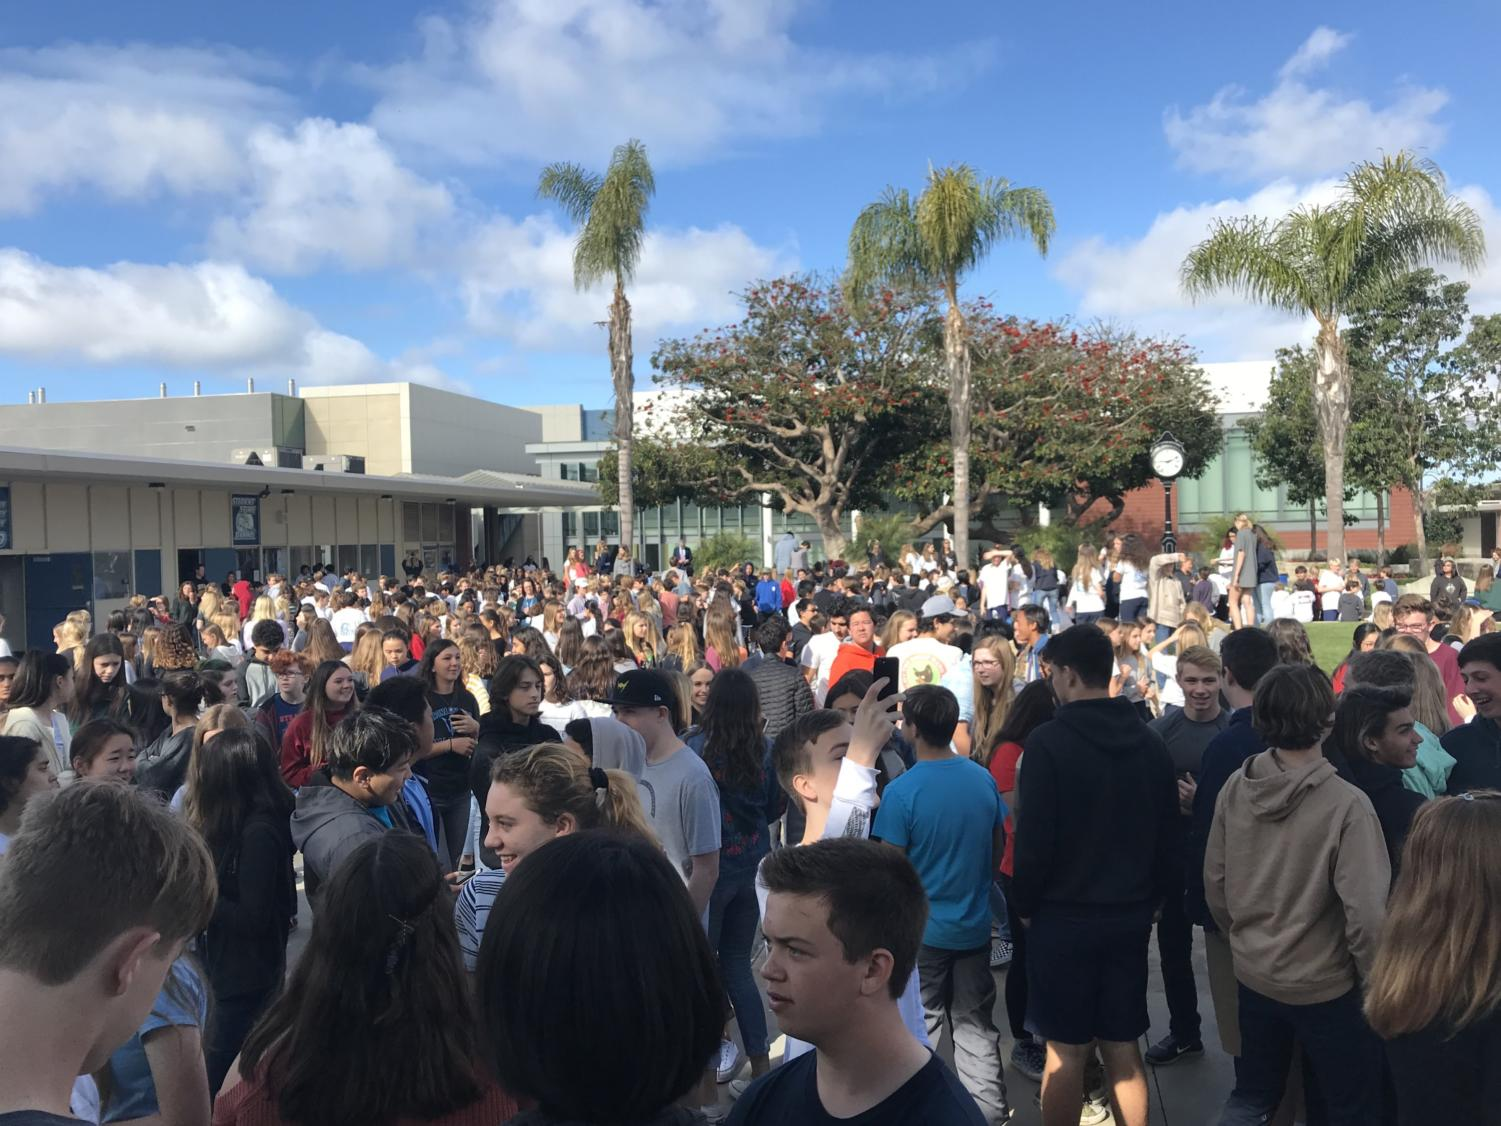 Hundreds of Sea Kings join the nation in solidarity with Parkland, FL.